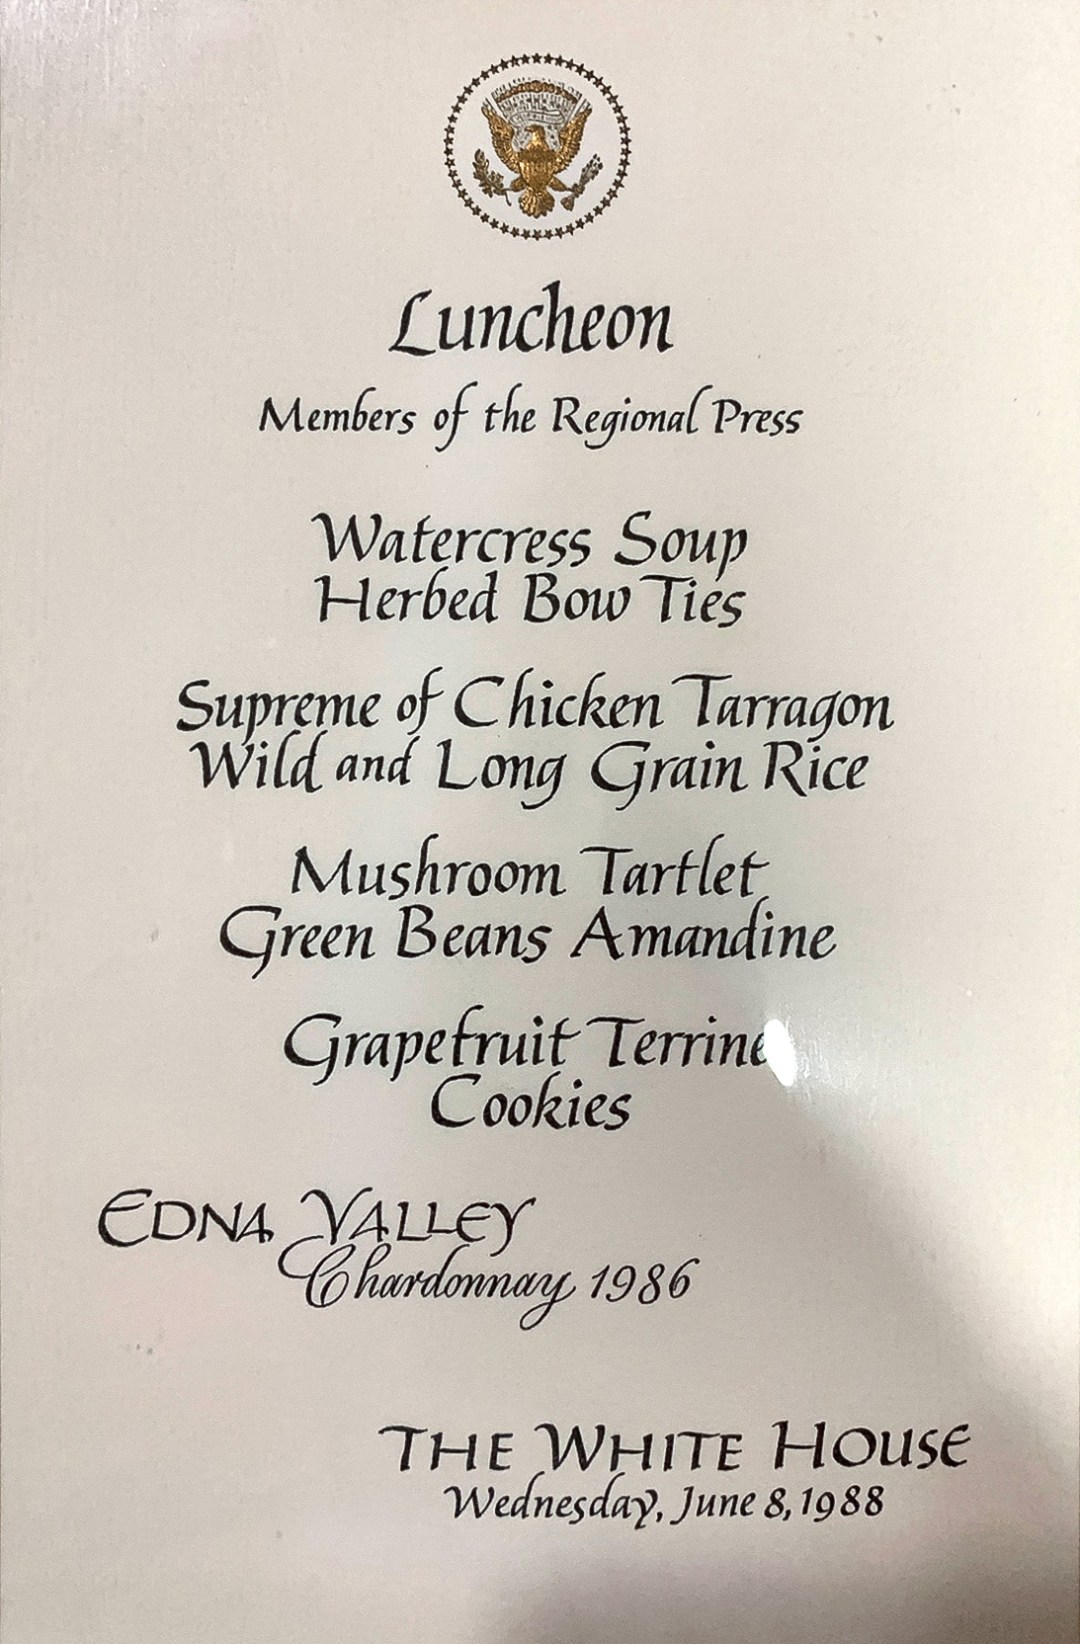 WhiteHouseMenu-Jun8-1988-EdnaValley